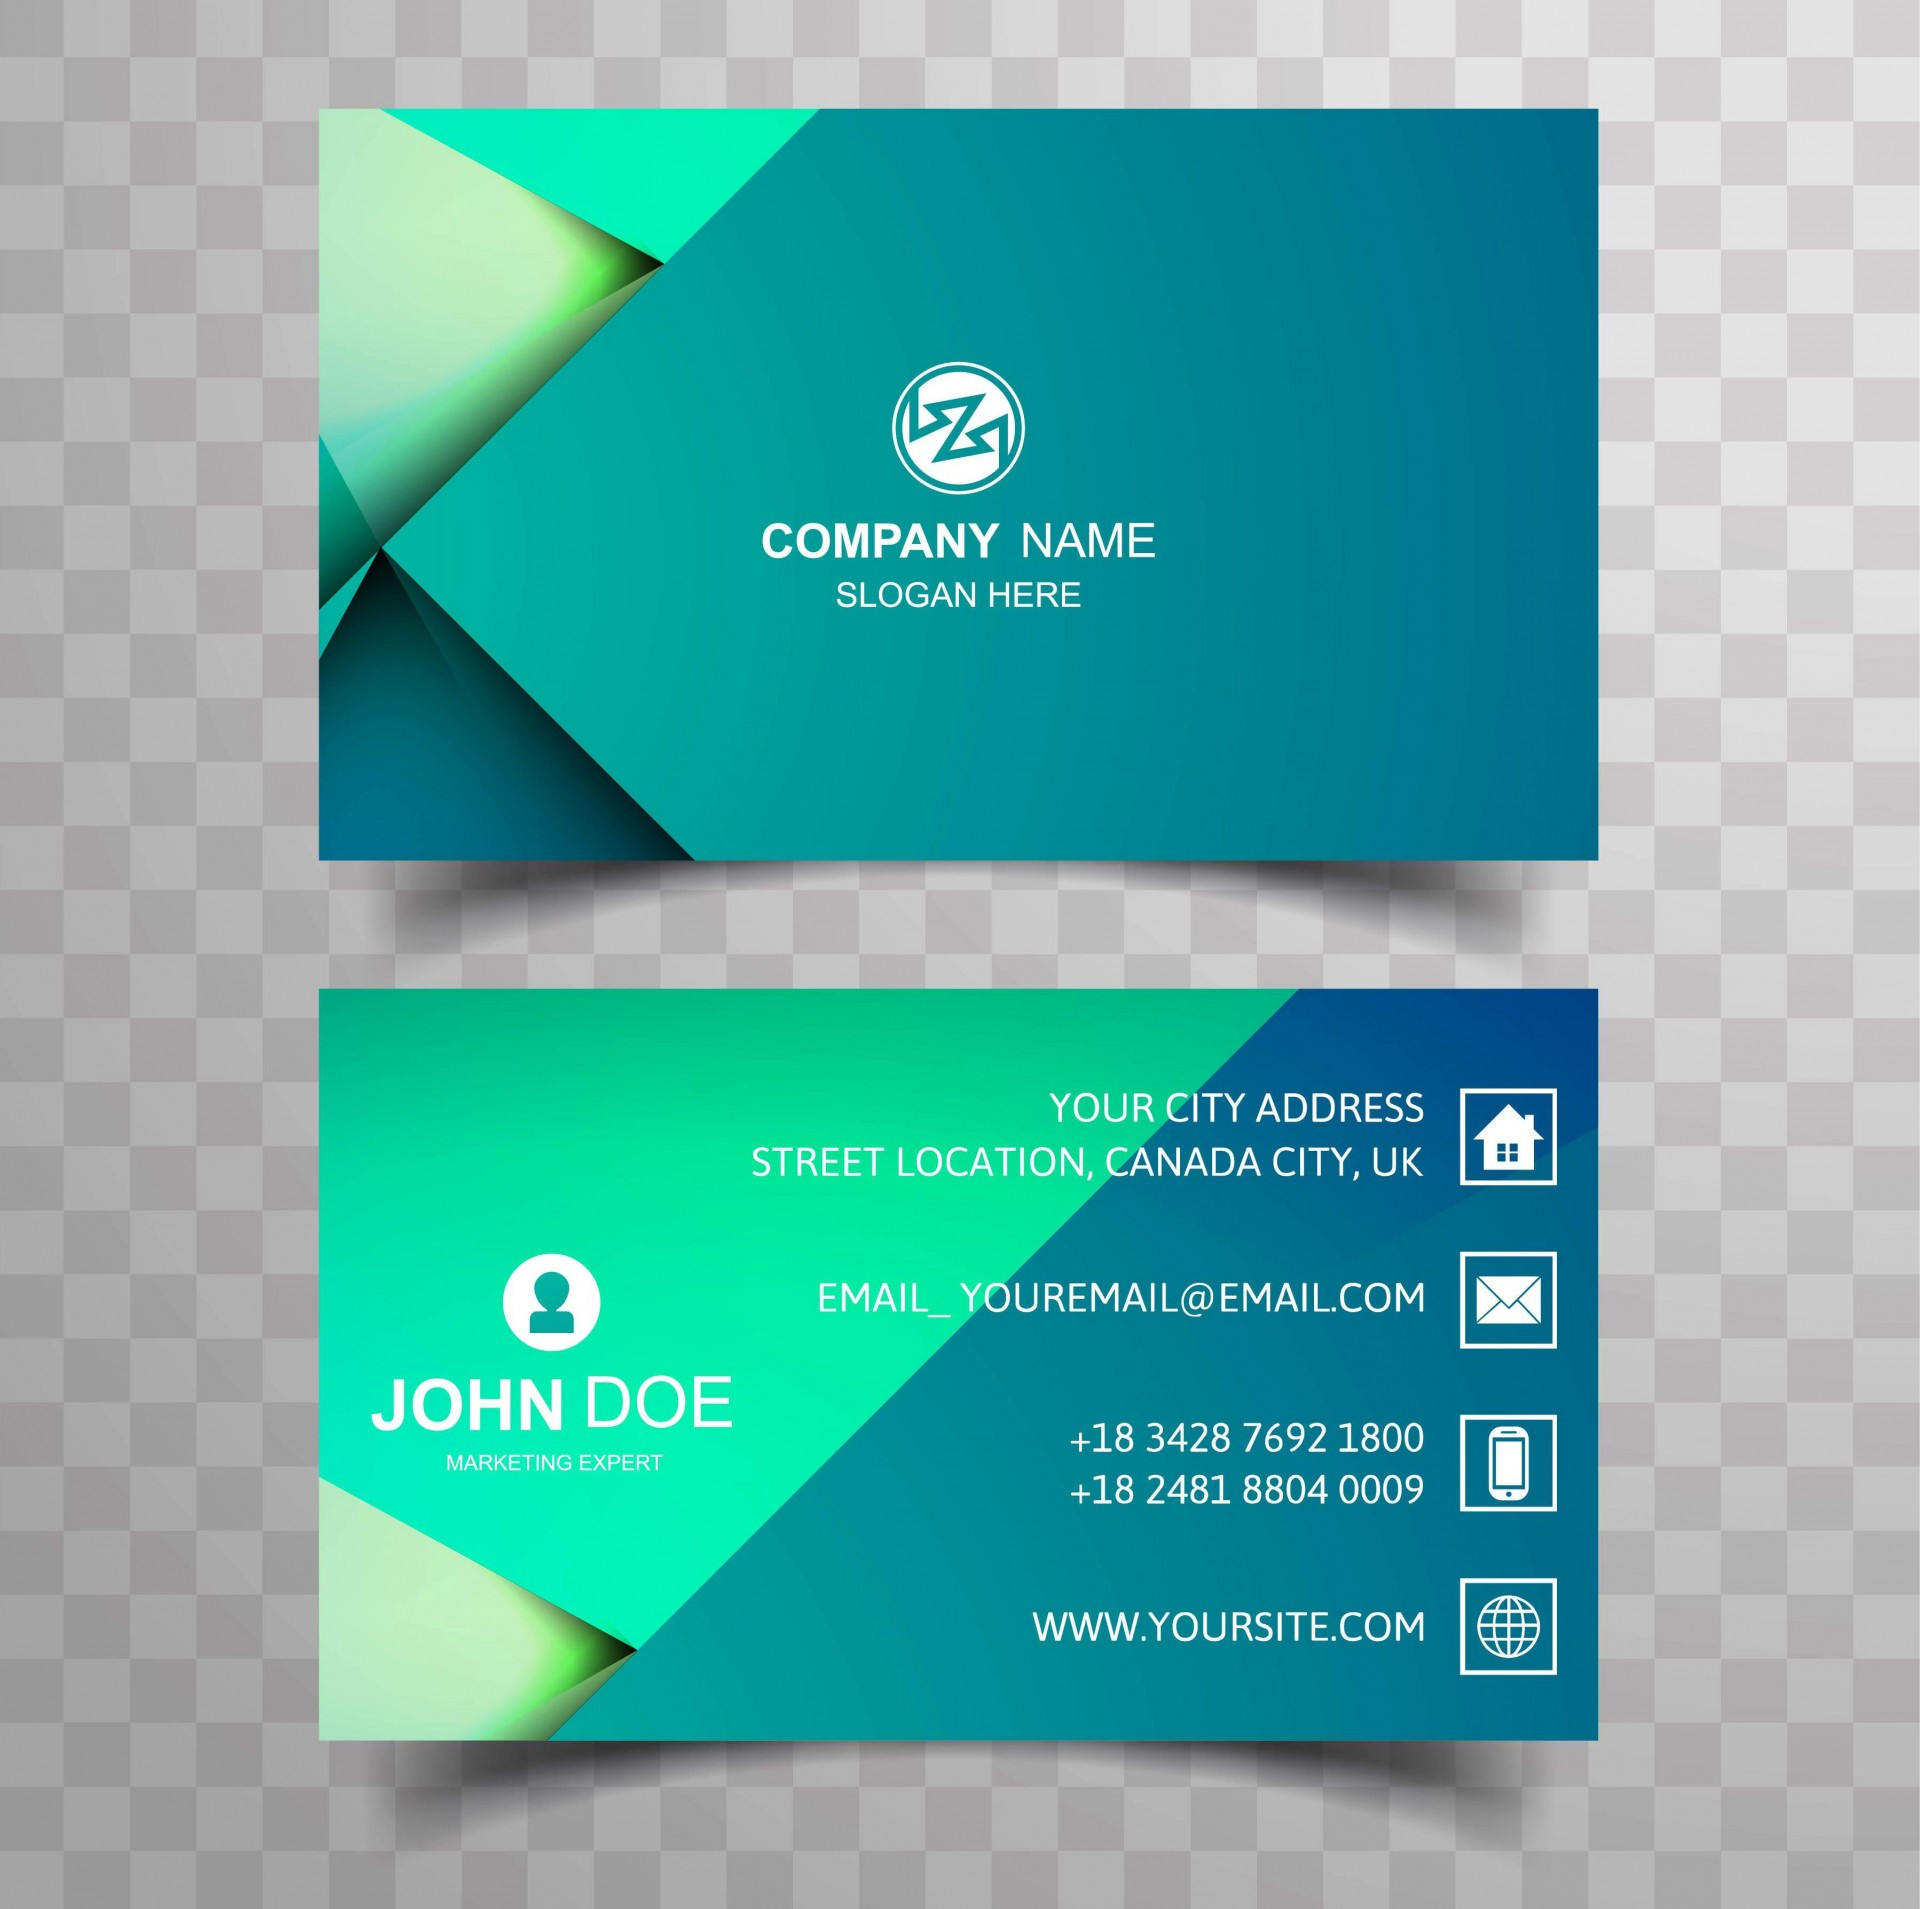 003 Wondrou Double Sided Busines Card Template Concept  Templates Word Free Two Microsoft1920